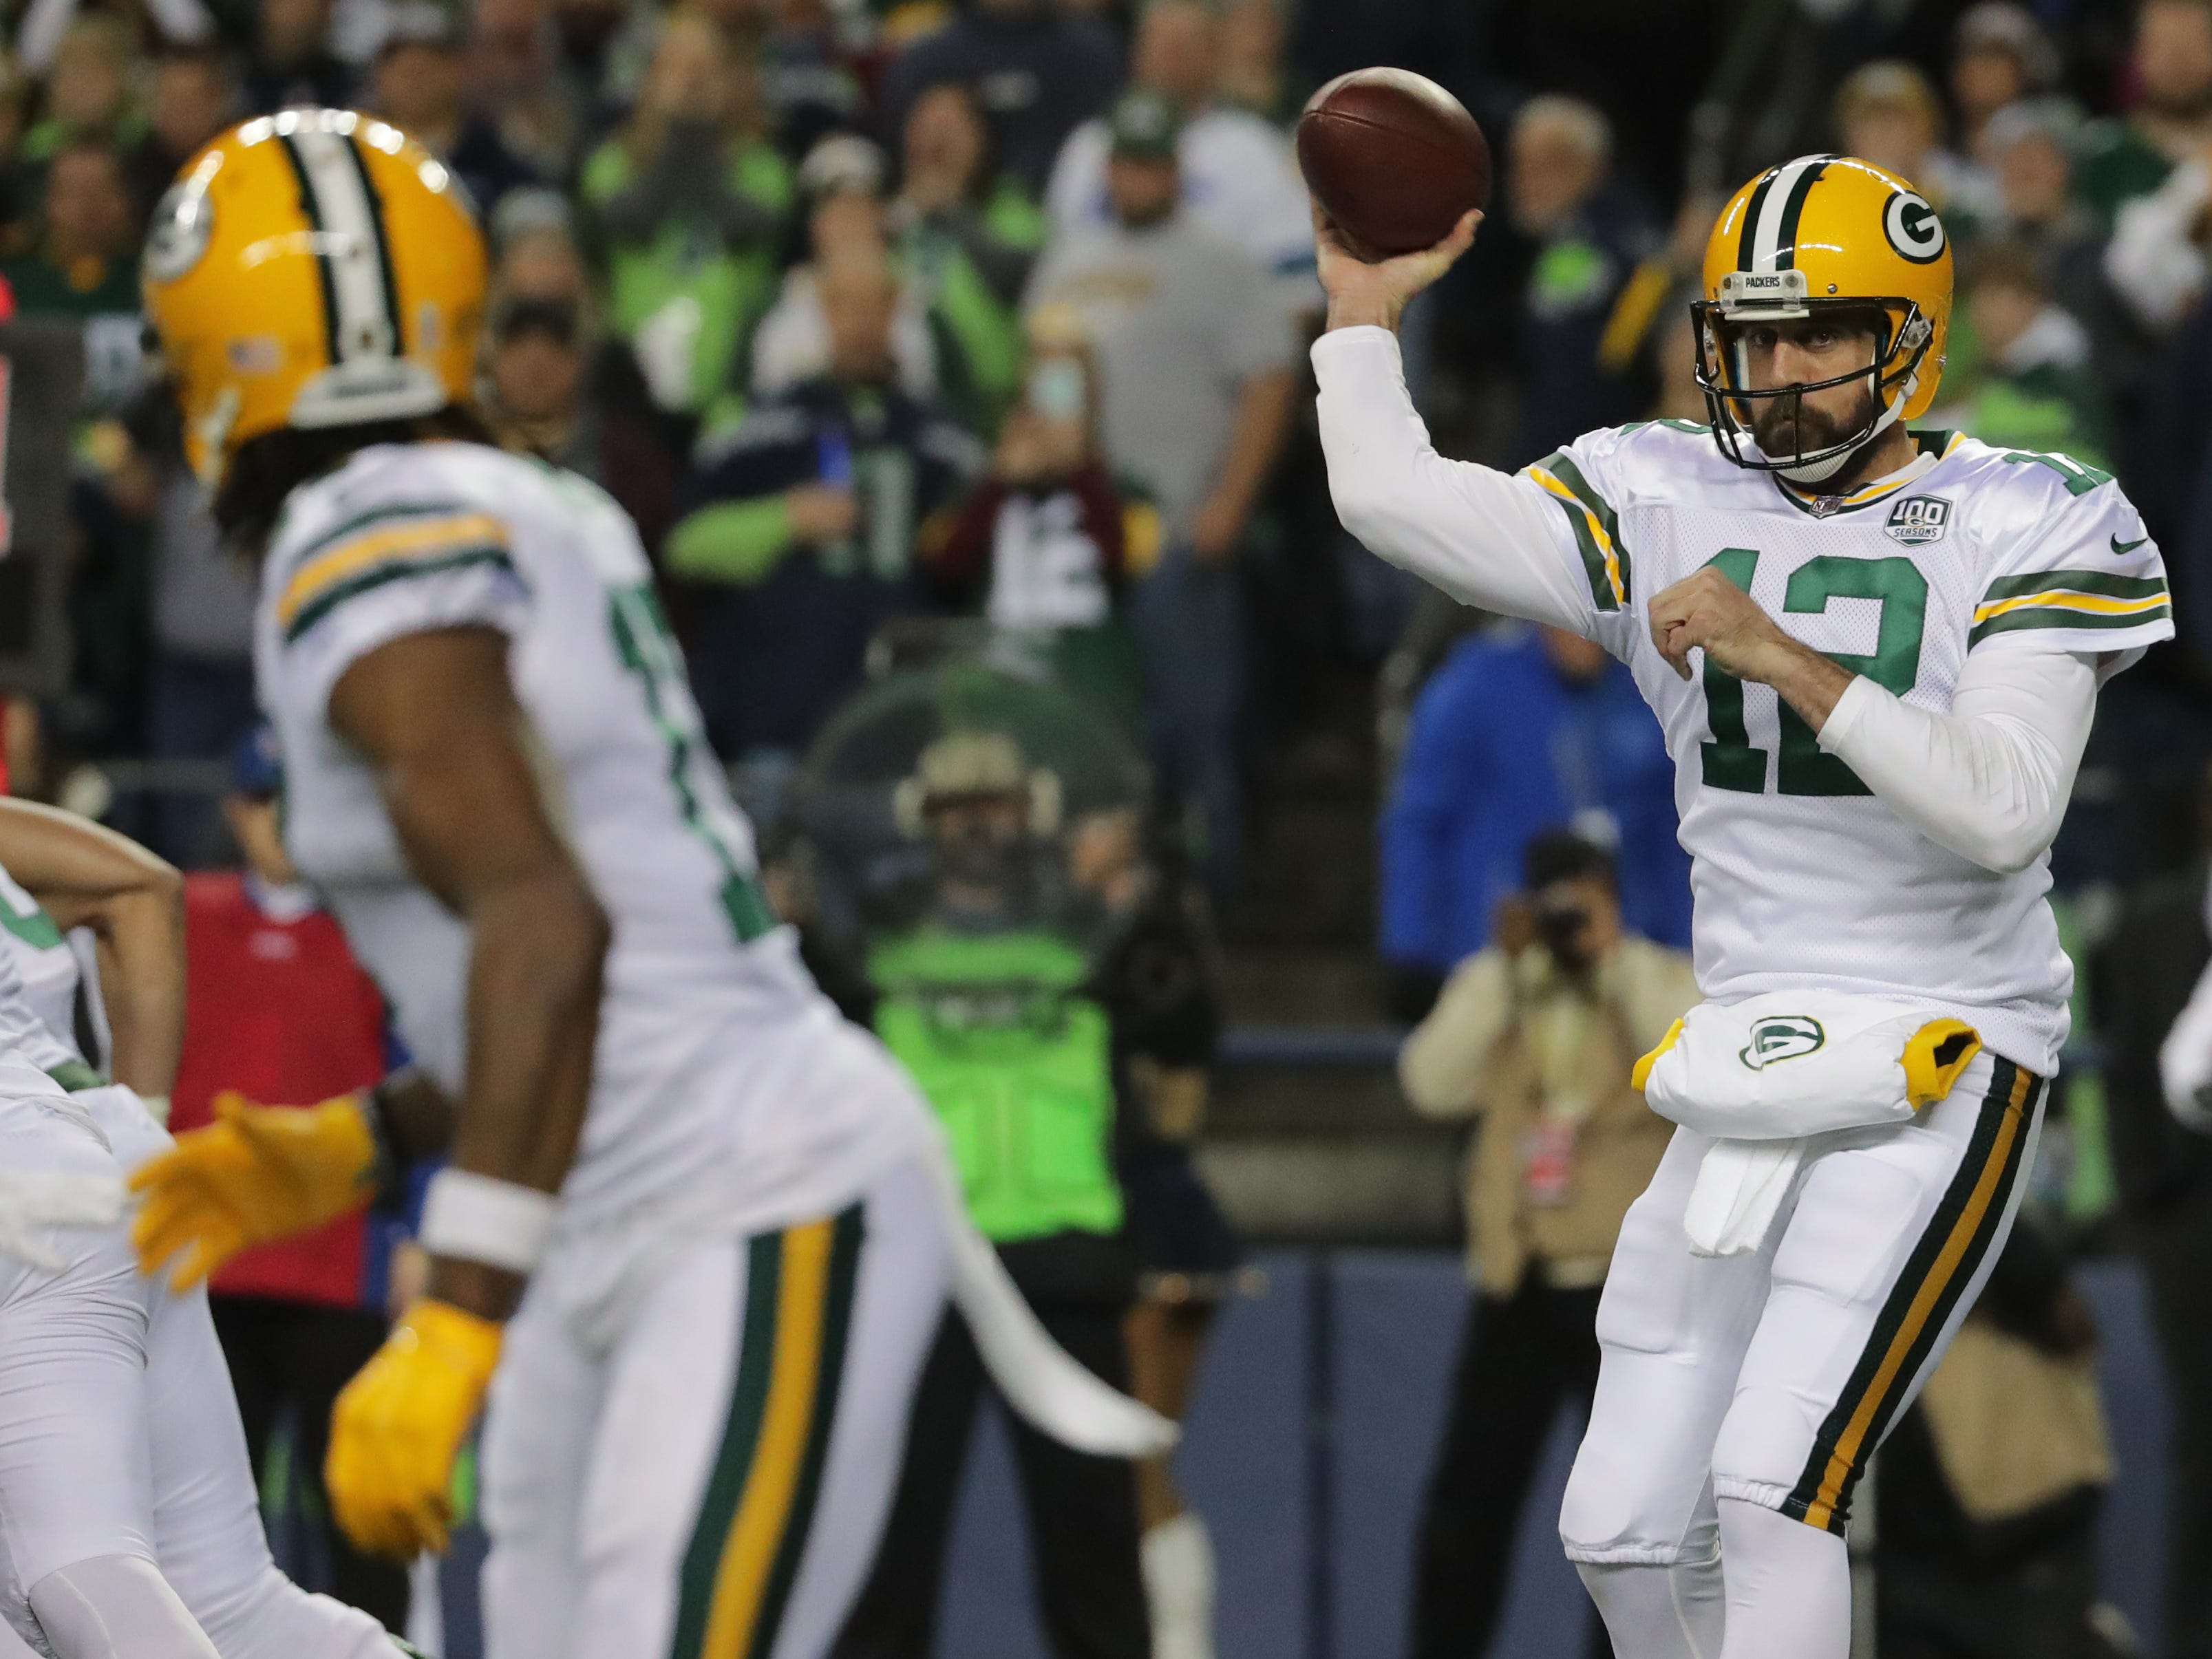 Green Bay Packers quarterback Aaron Rodgers (12) throws an 11-yard pass to wide receiver Davante Adams (17) during the second quarter of their game against the Seattle Seahawks Thursday, November 25, 2018 at CenturyLink Field in Seattle, Wash.  MARK HOFFMAN/MHOFFMAN@JOURNALSENTINEL.COM